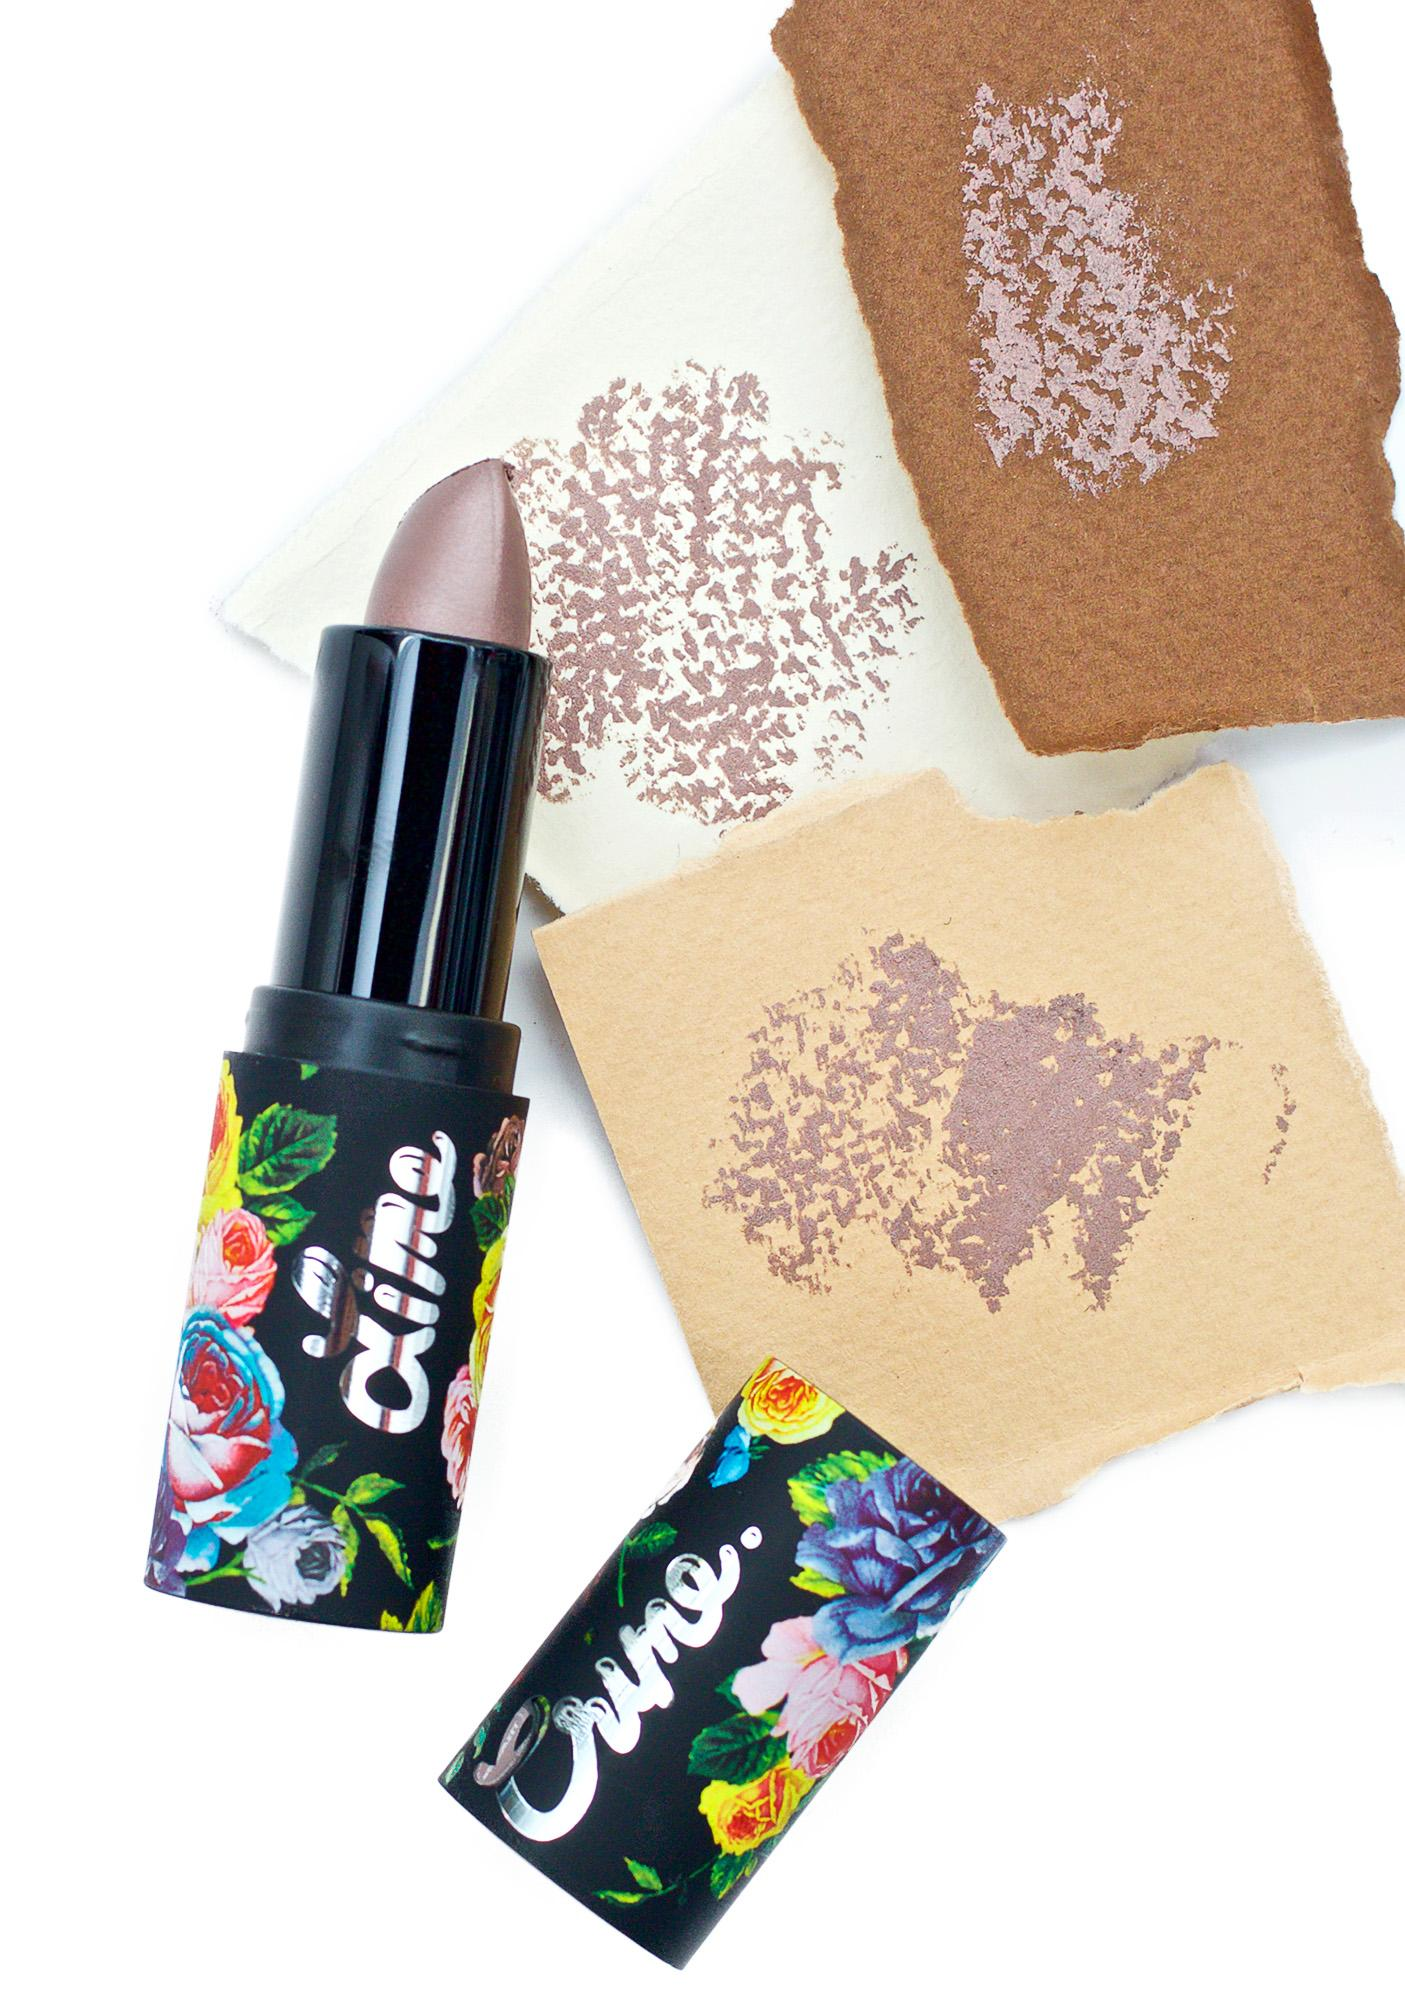 Lime Crime Roswell Perlees Lipstick